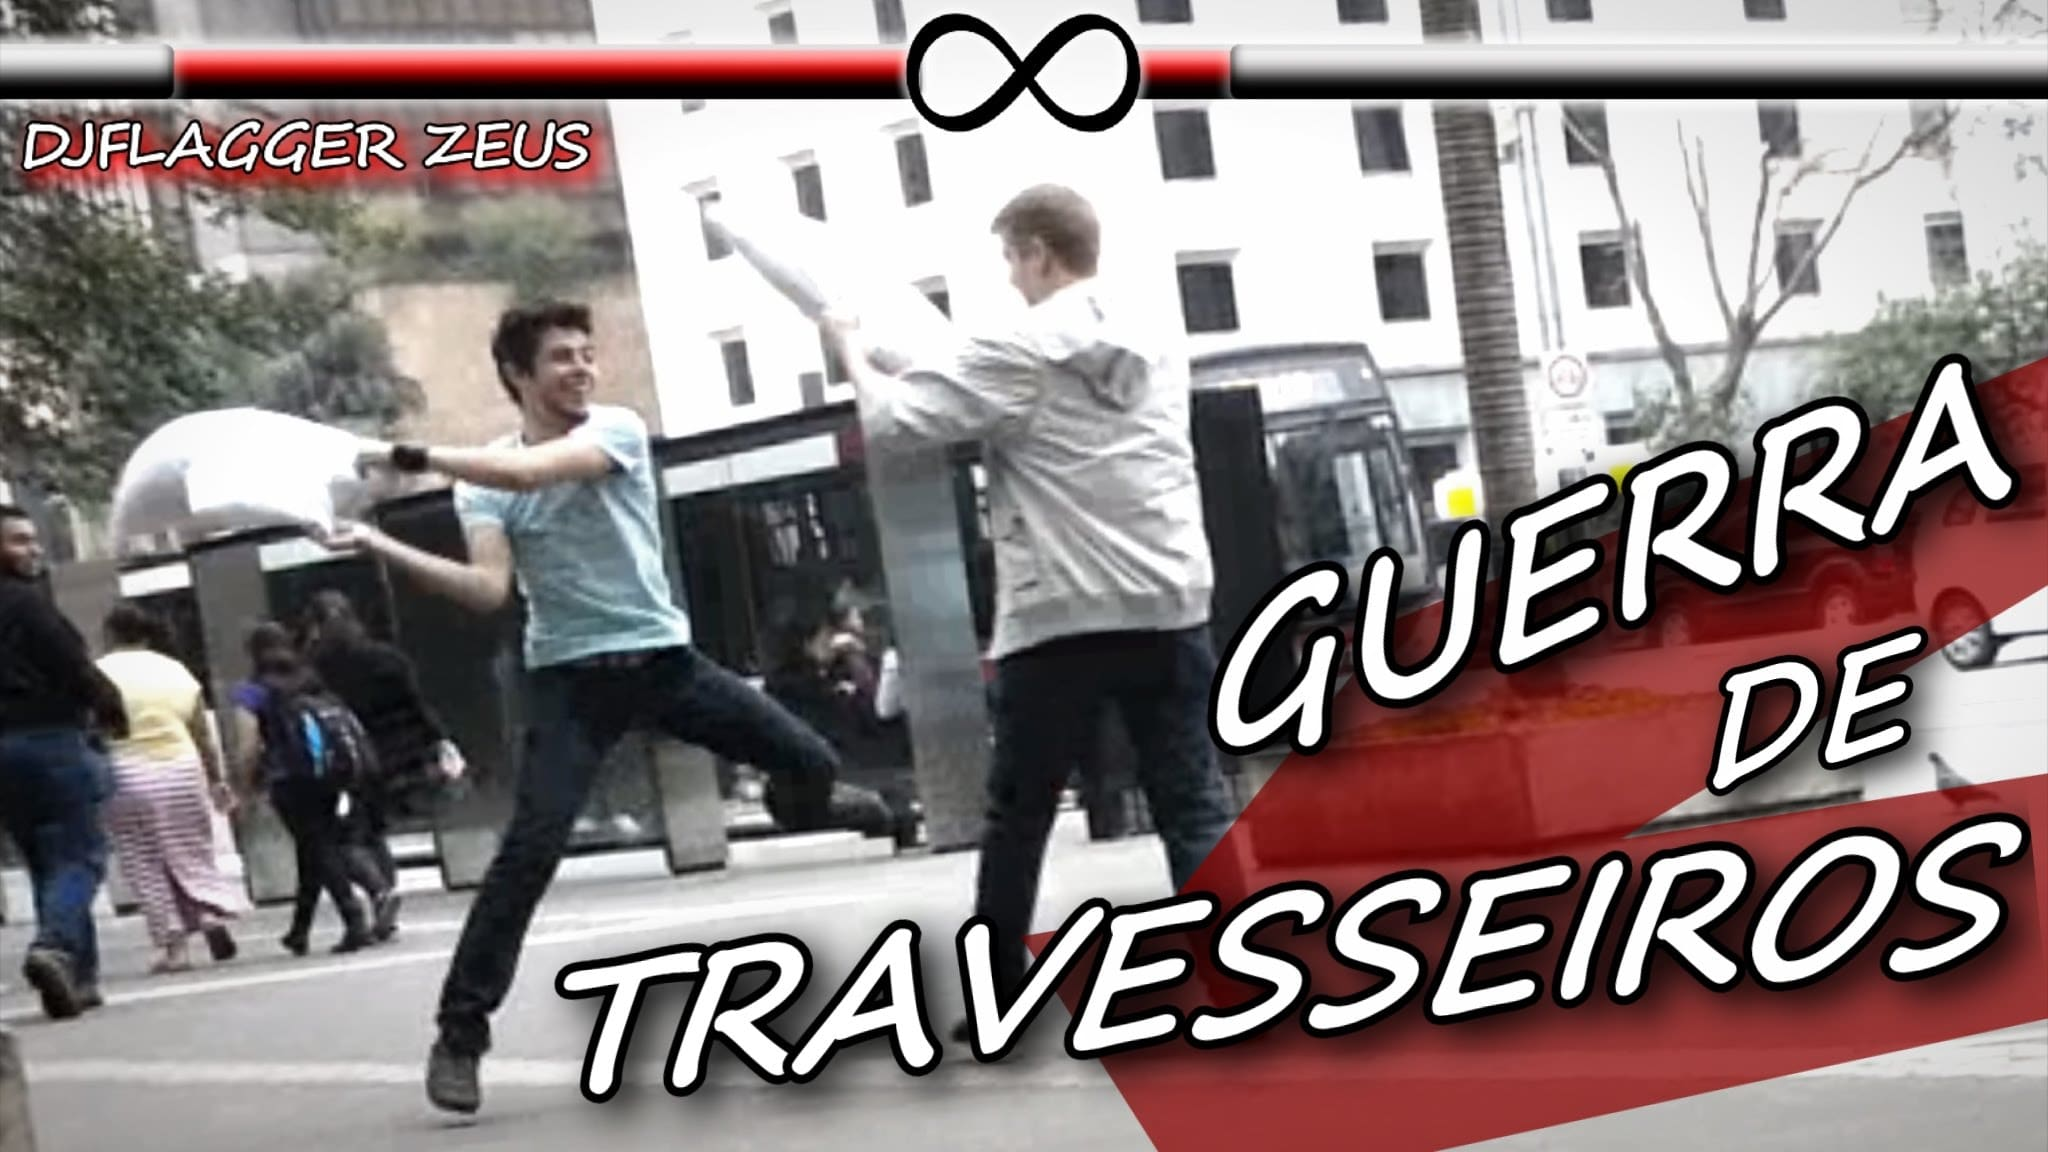 Guerra de Travesseiros (Pillow Fight Prank)